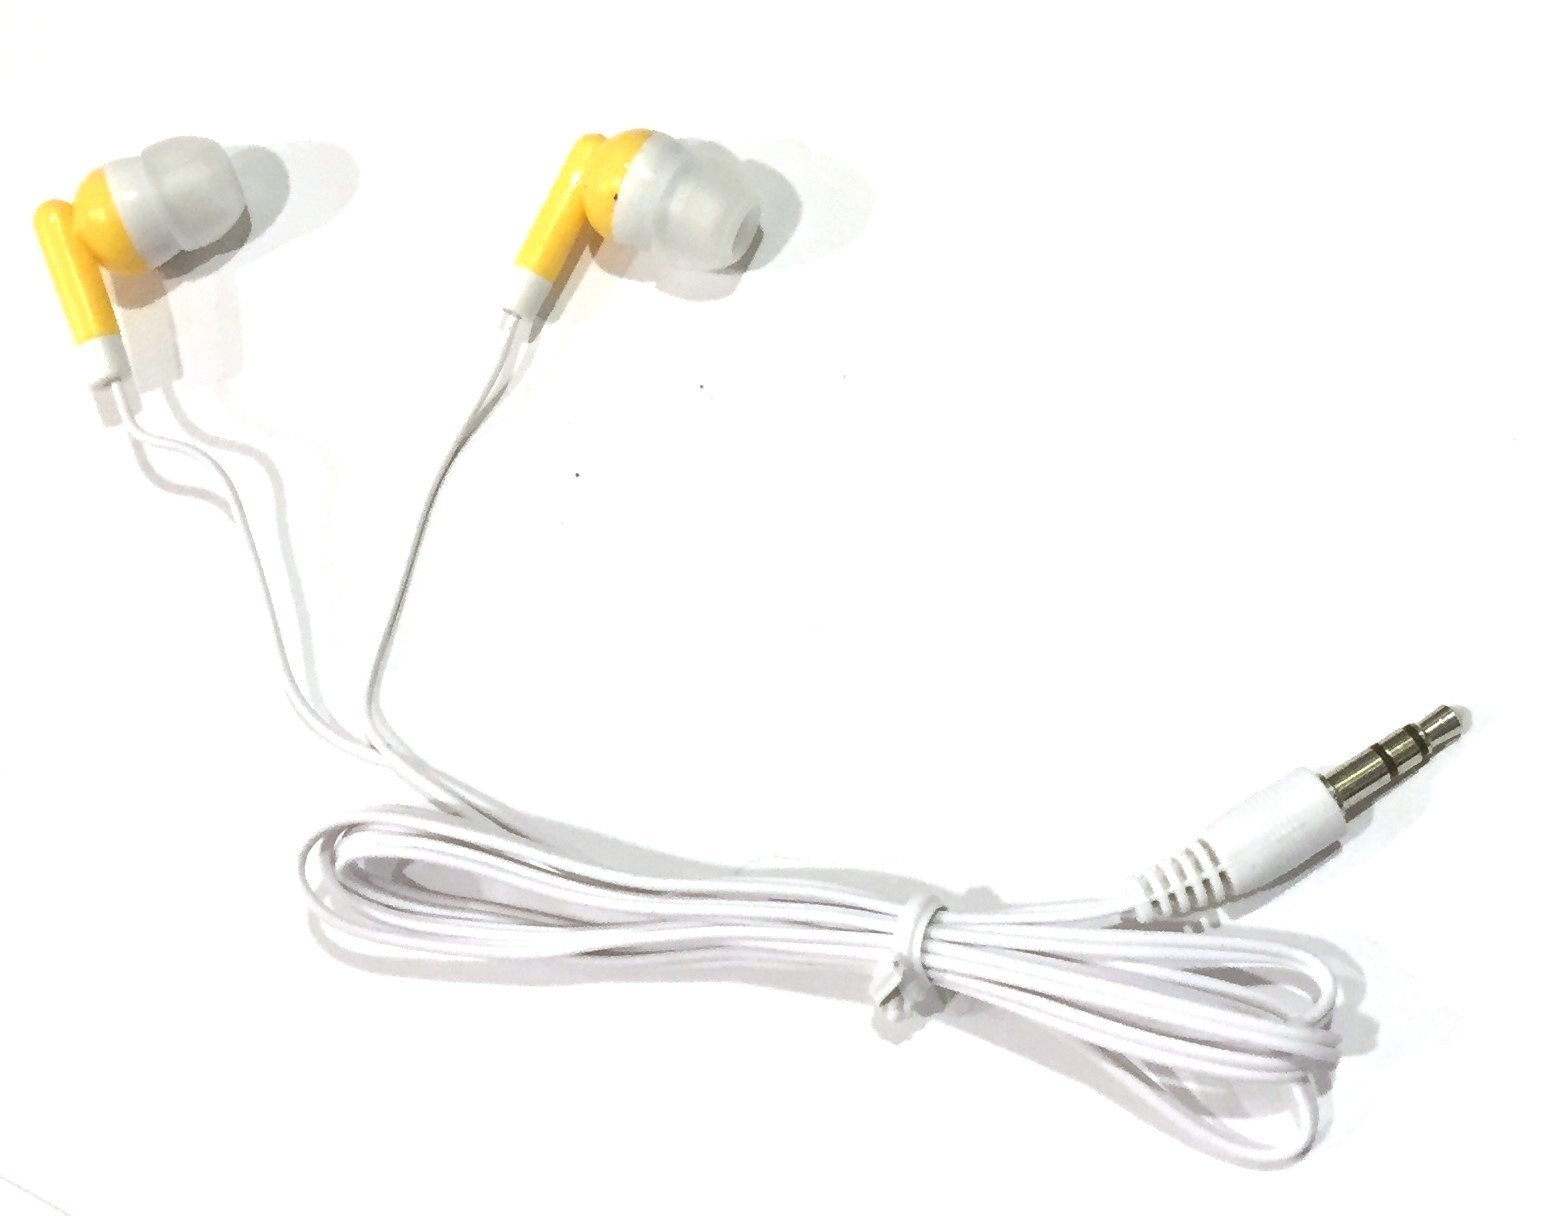 TFD Supplies Wholesale Bulk Earbuds Headphones 100 Pack For Iphone, Android, MP3 Player - Yellow/Gold by TFD Supplies